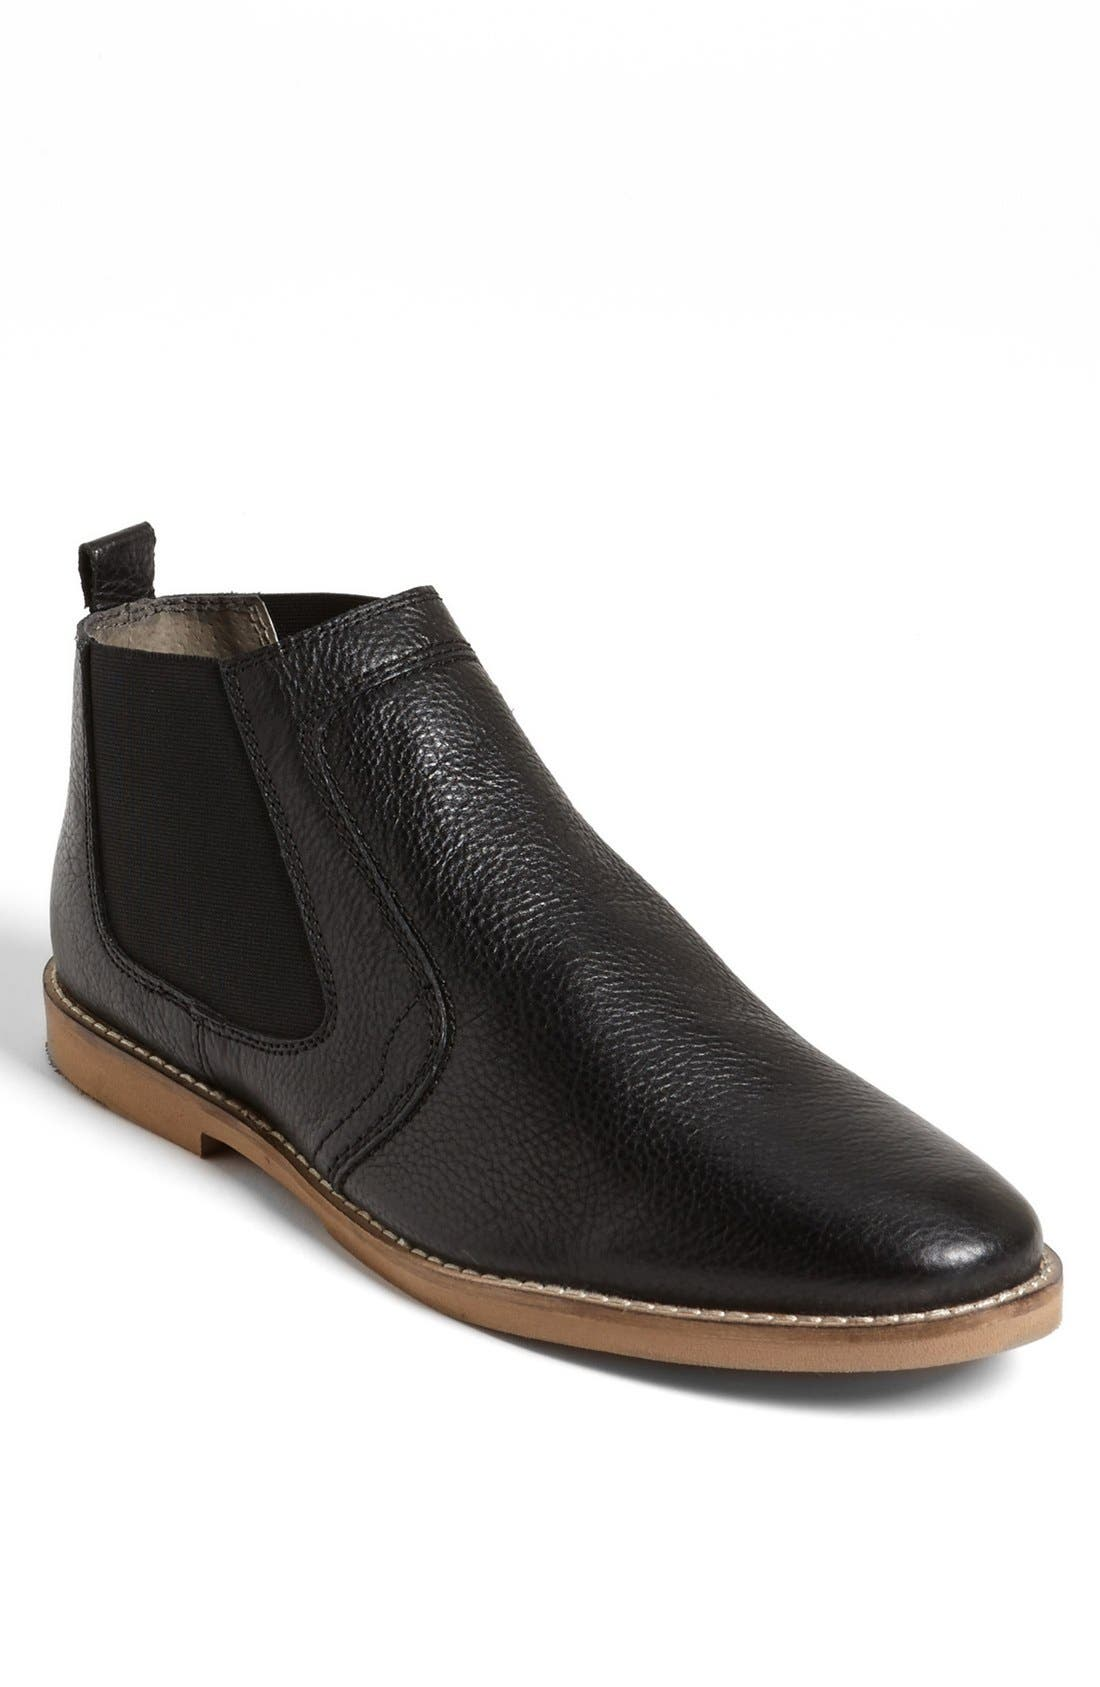 Alternate Image 1 Selected - Frank Wright 'Wise II' Chelsea Boot